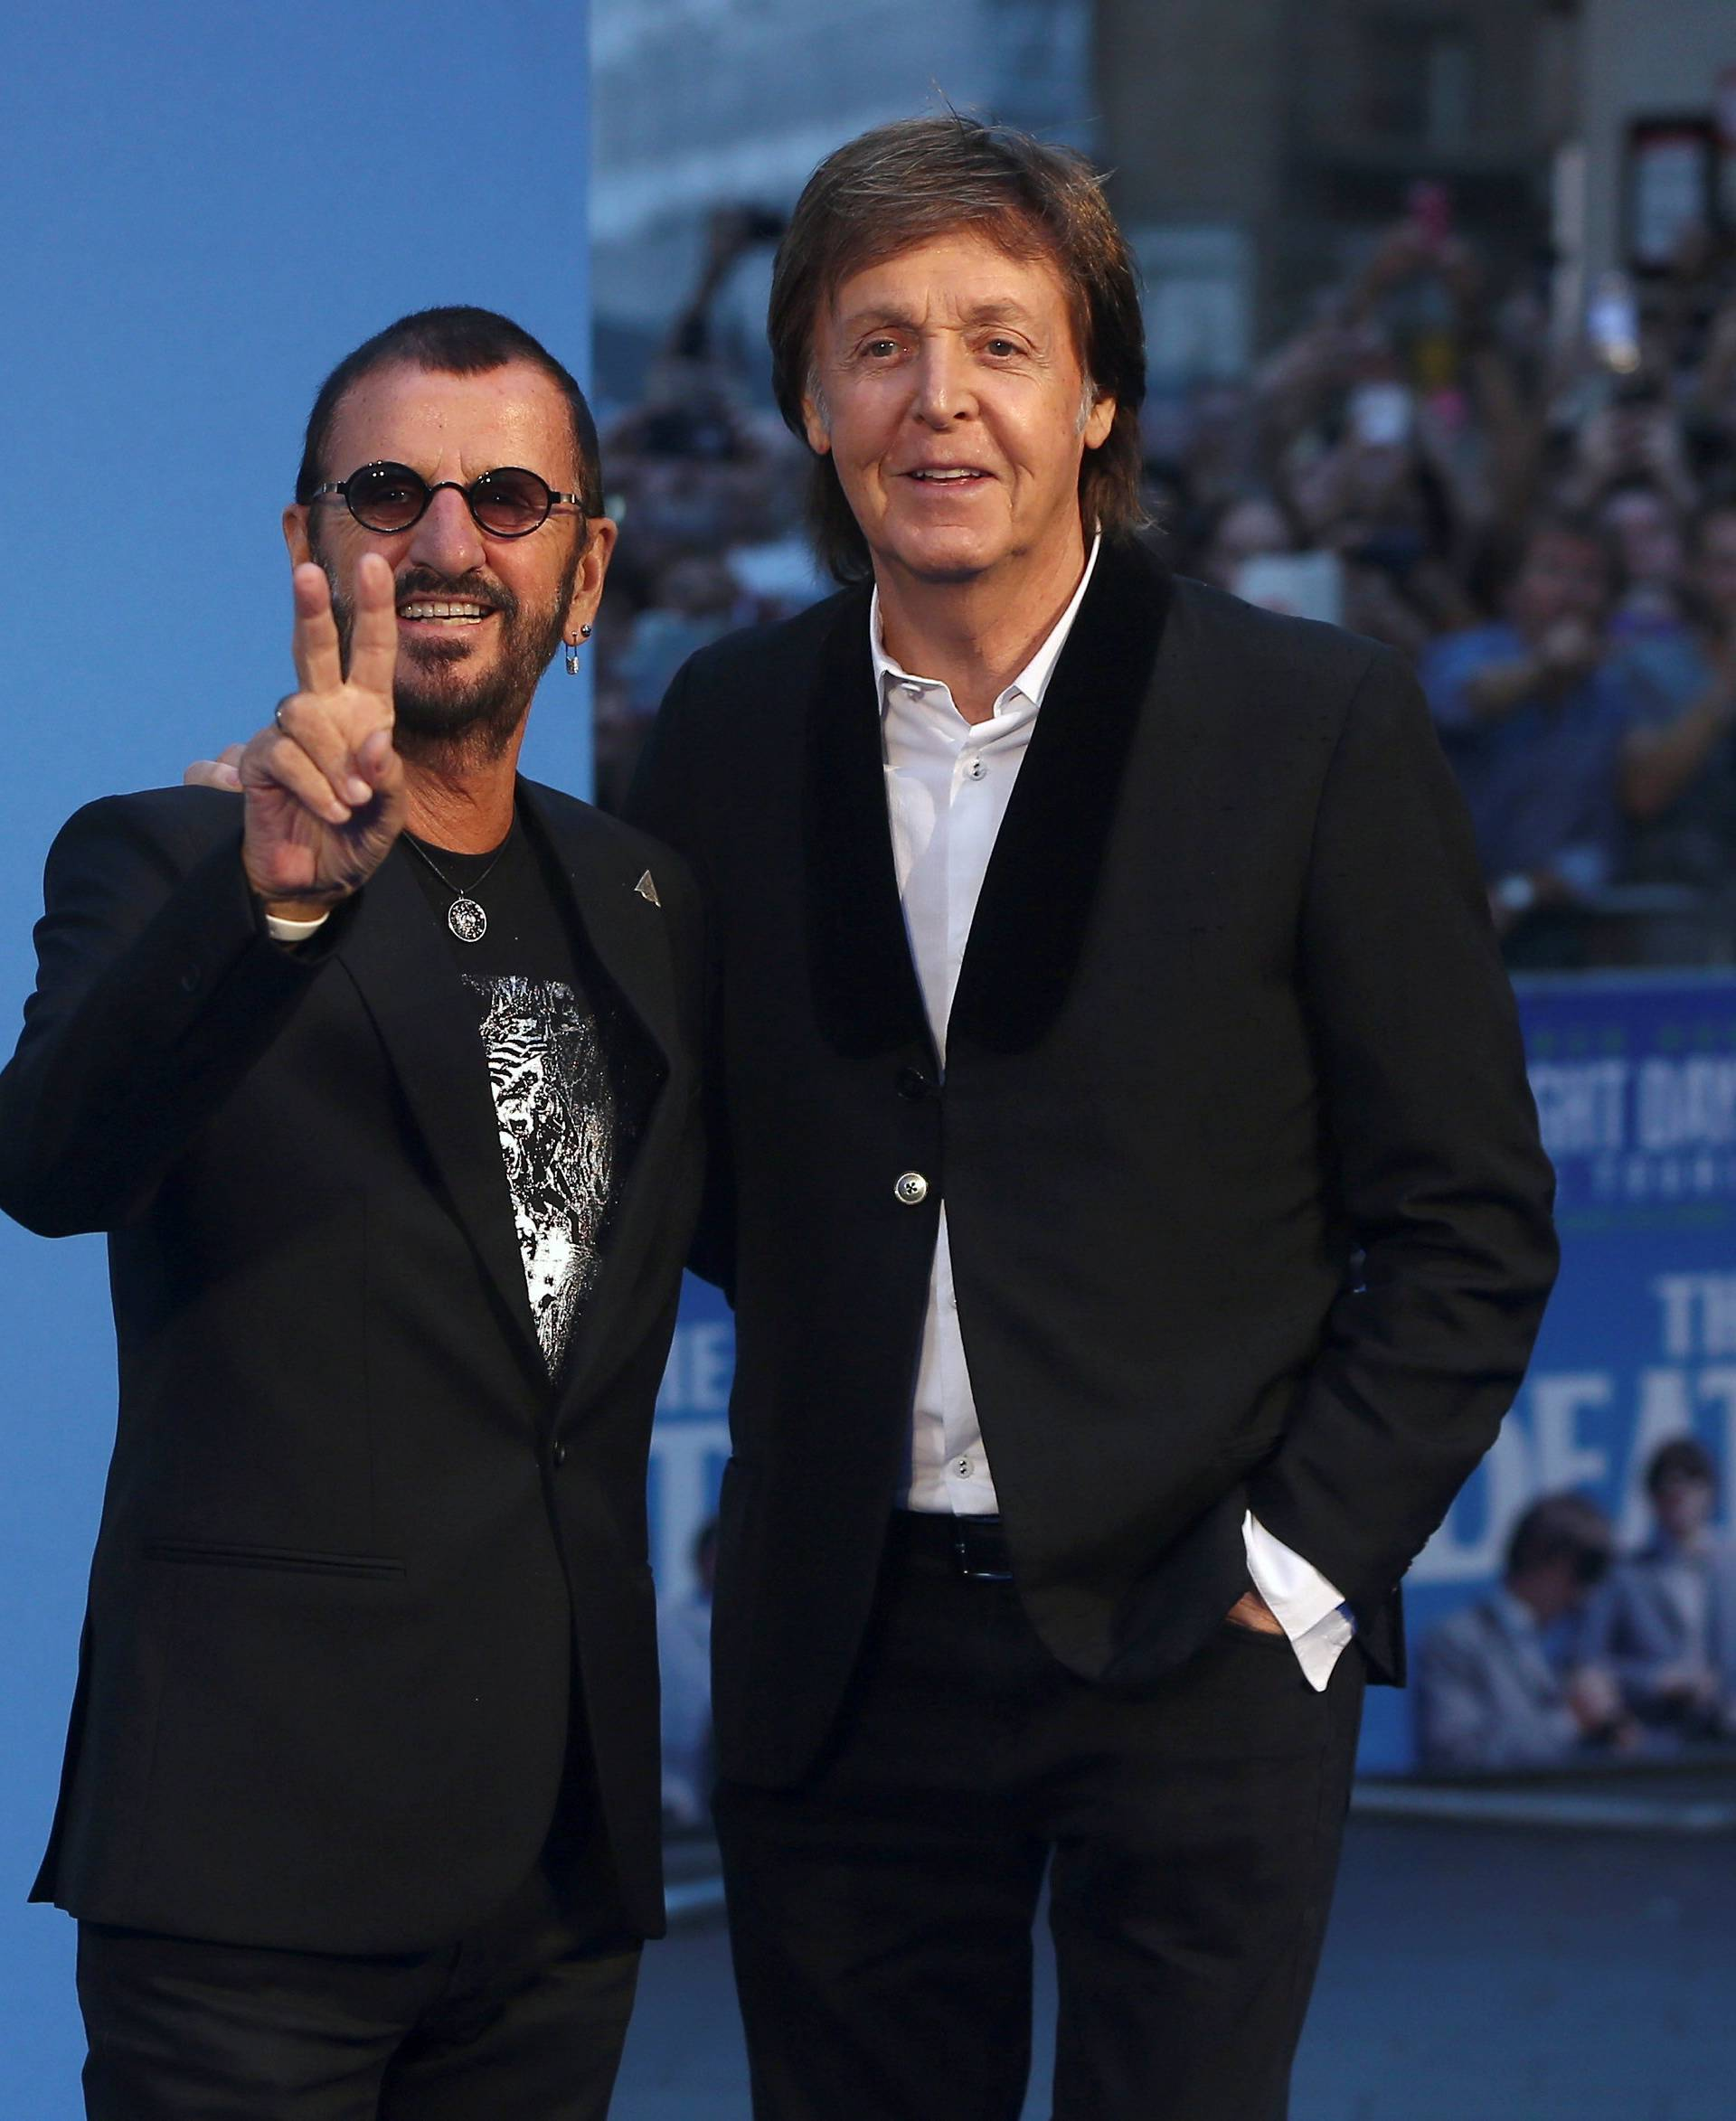 FILE PHOTO: Former Beatles Ringo Starr and Paul McCartney attend the world premiere of The Beatles: 'Eight Days a Week - The Touring Years' in London